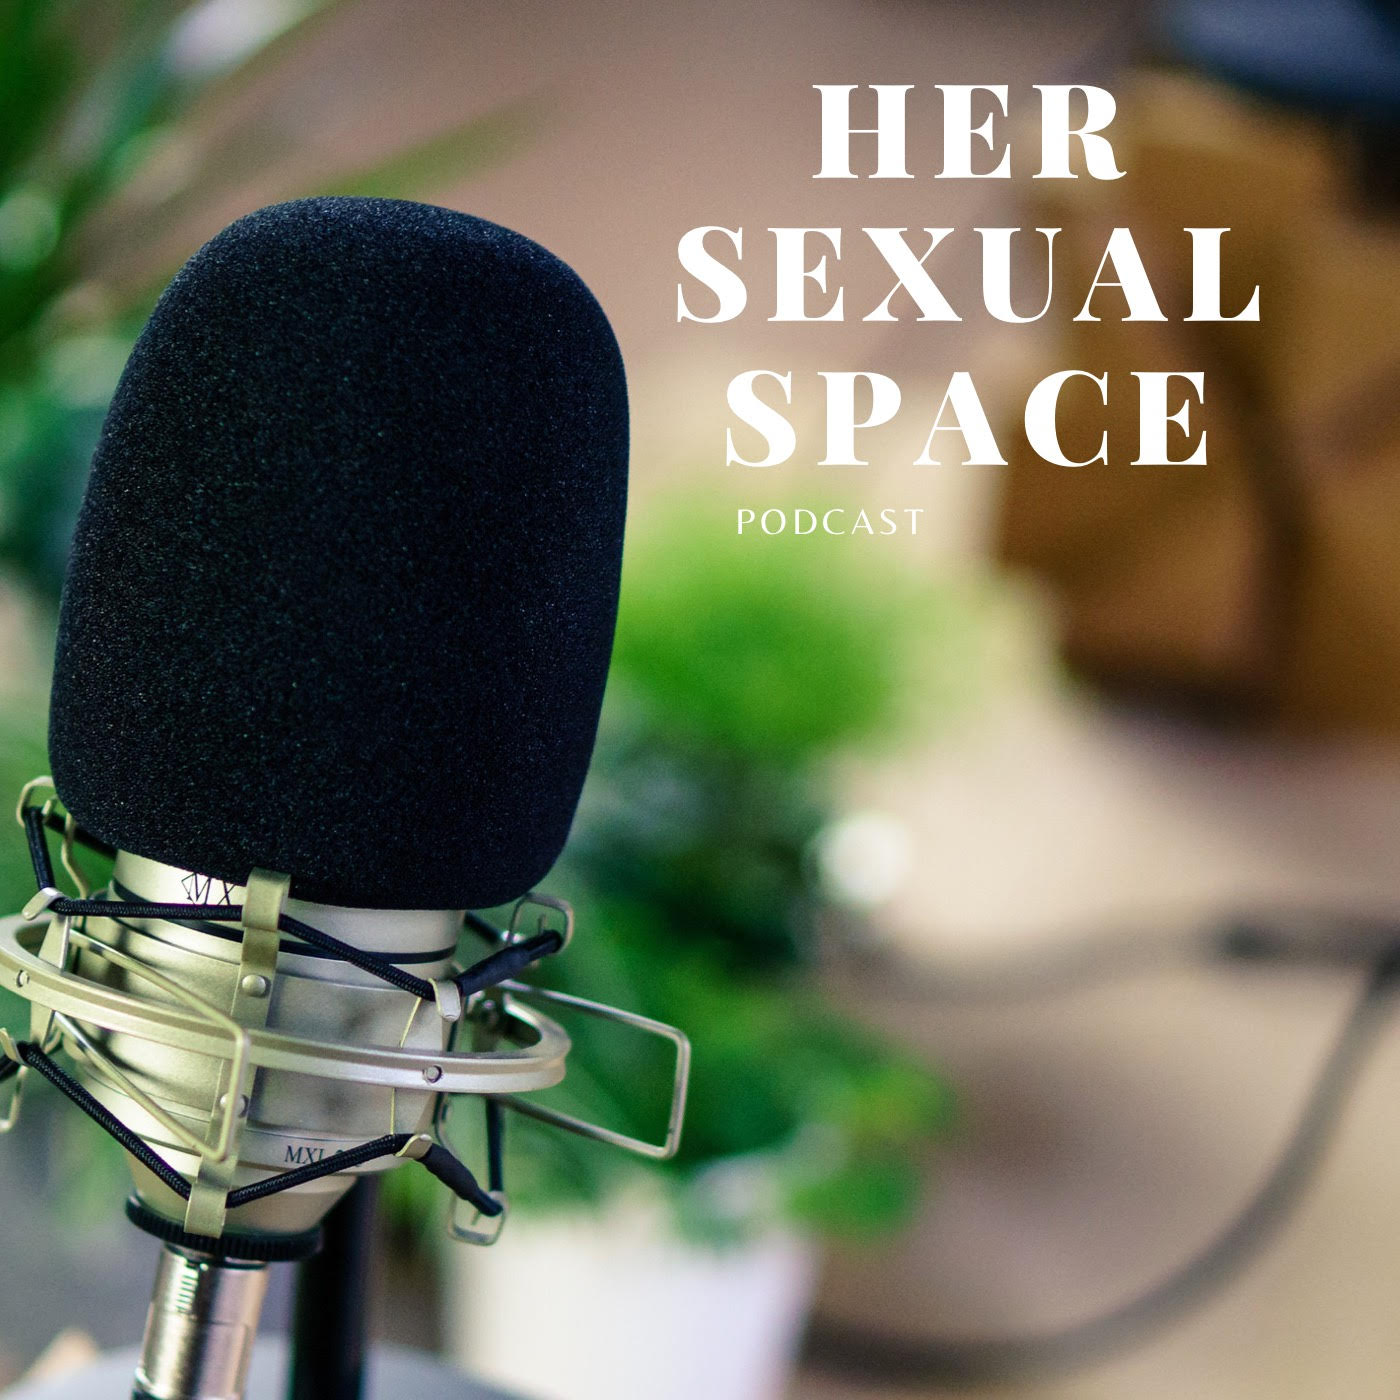 Her sexual space podcast